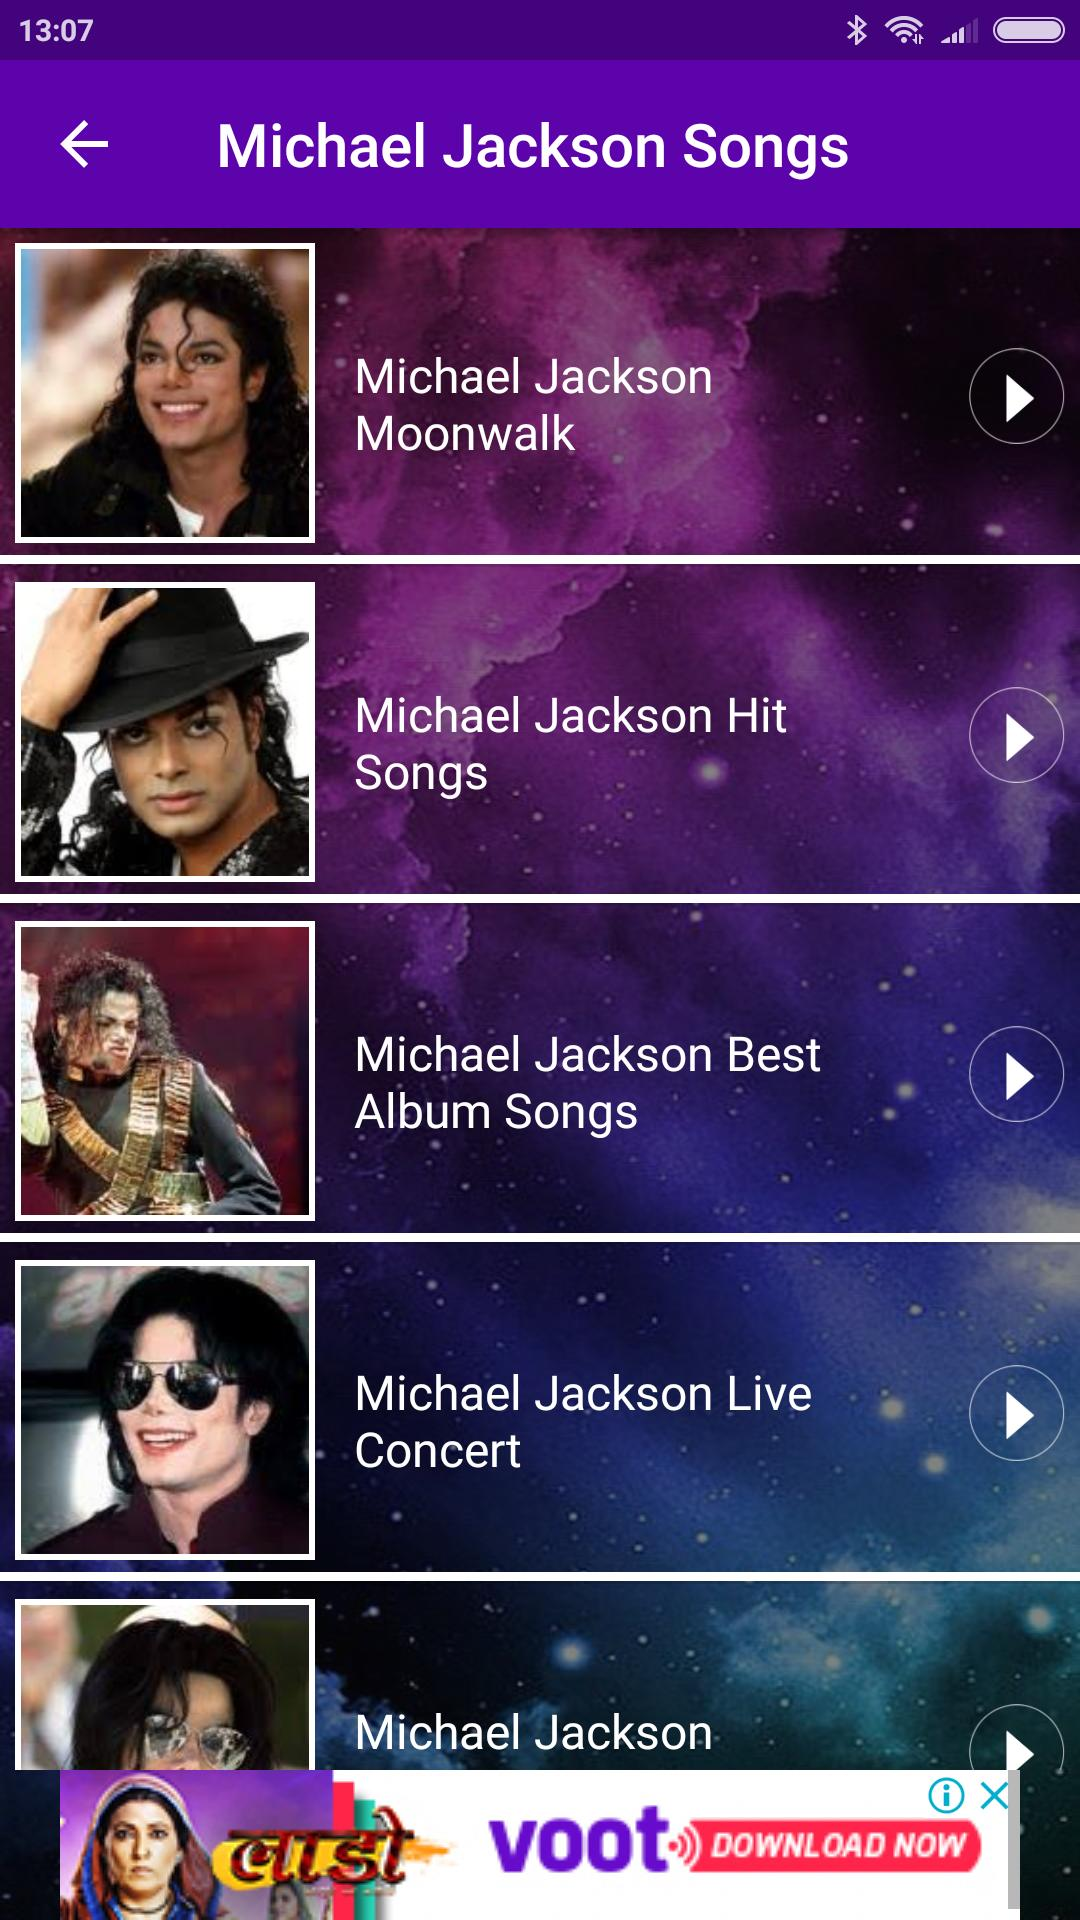 Michael Jackson All Video Songs for Android - APK Download